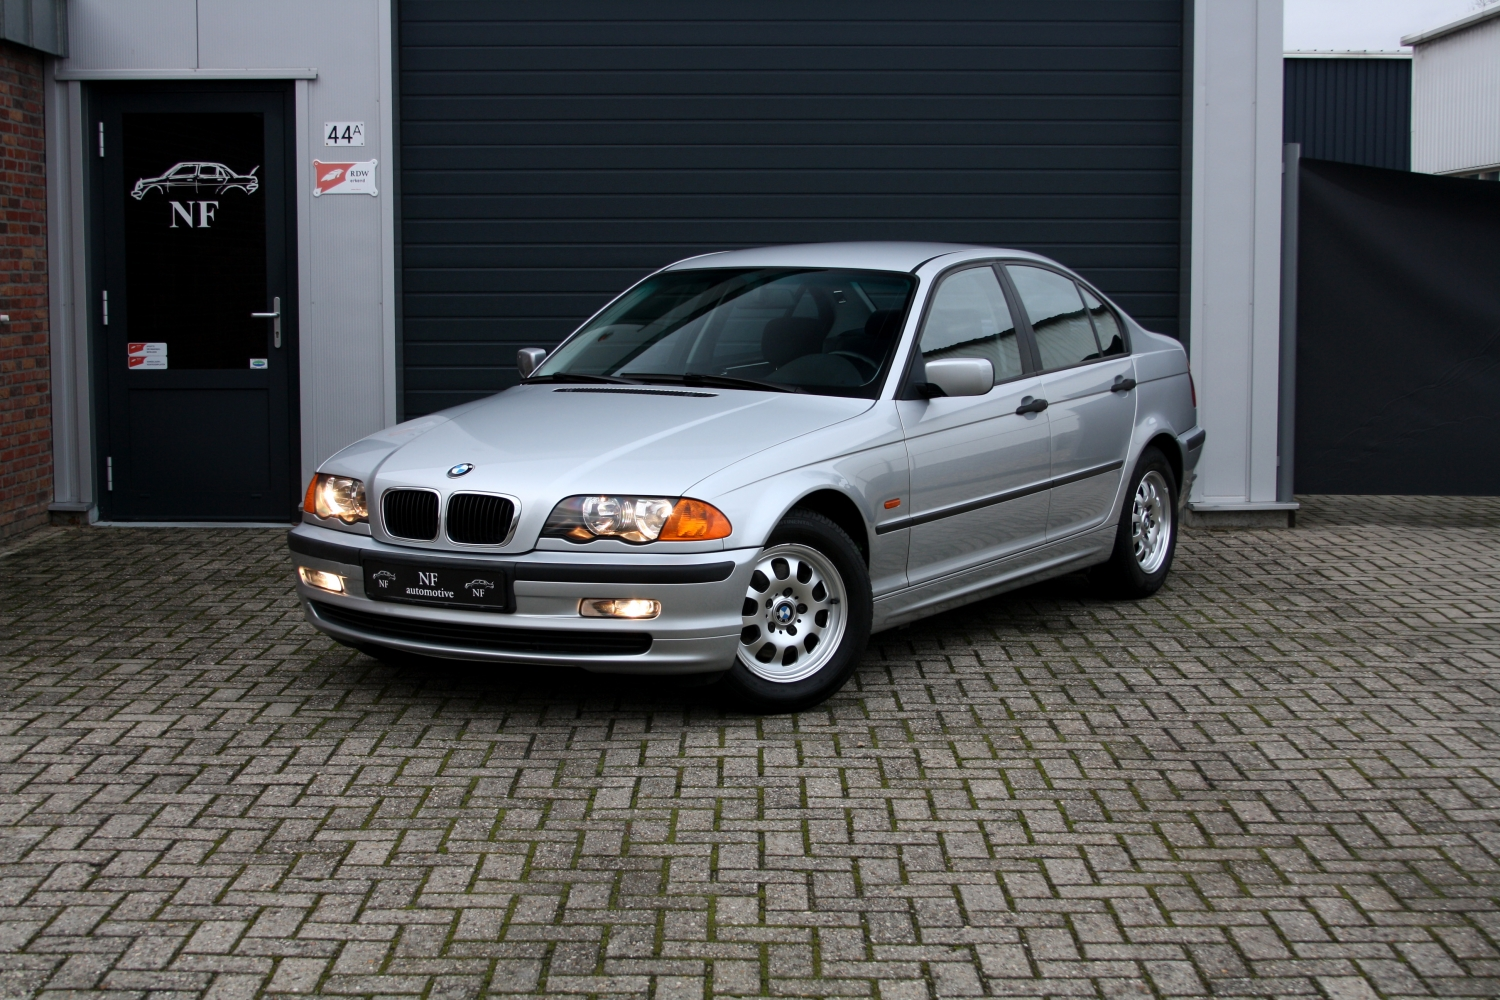 Bmw 318i E46 Sedan 2nd Owner Bmw Maintained Kopen Bij Nf Automotive